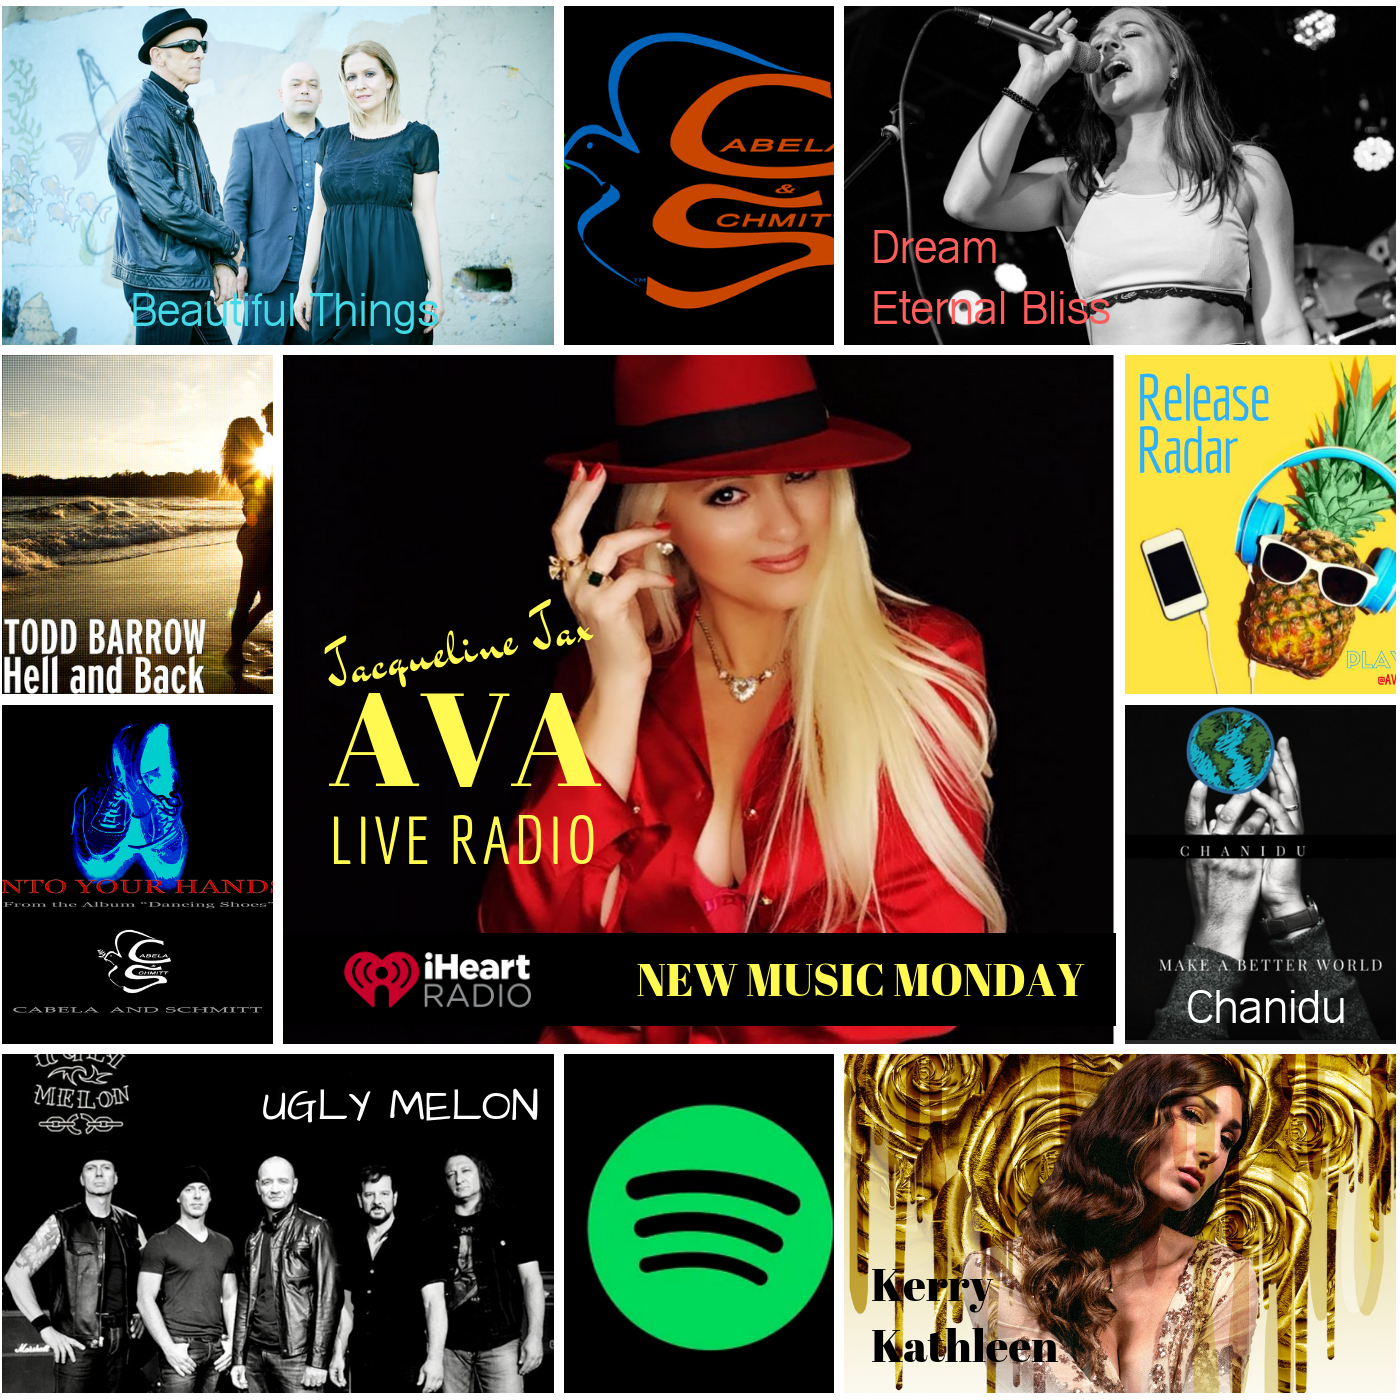 9.30 New Music Monday Release radar with Jacqueline Jax.png